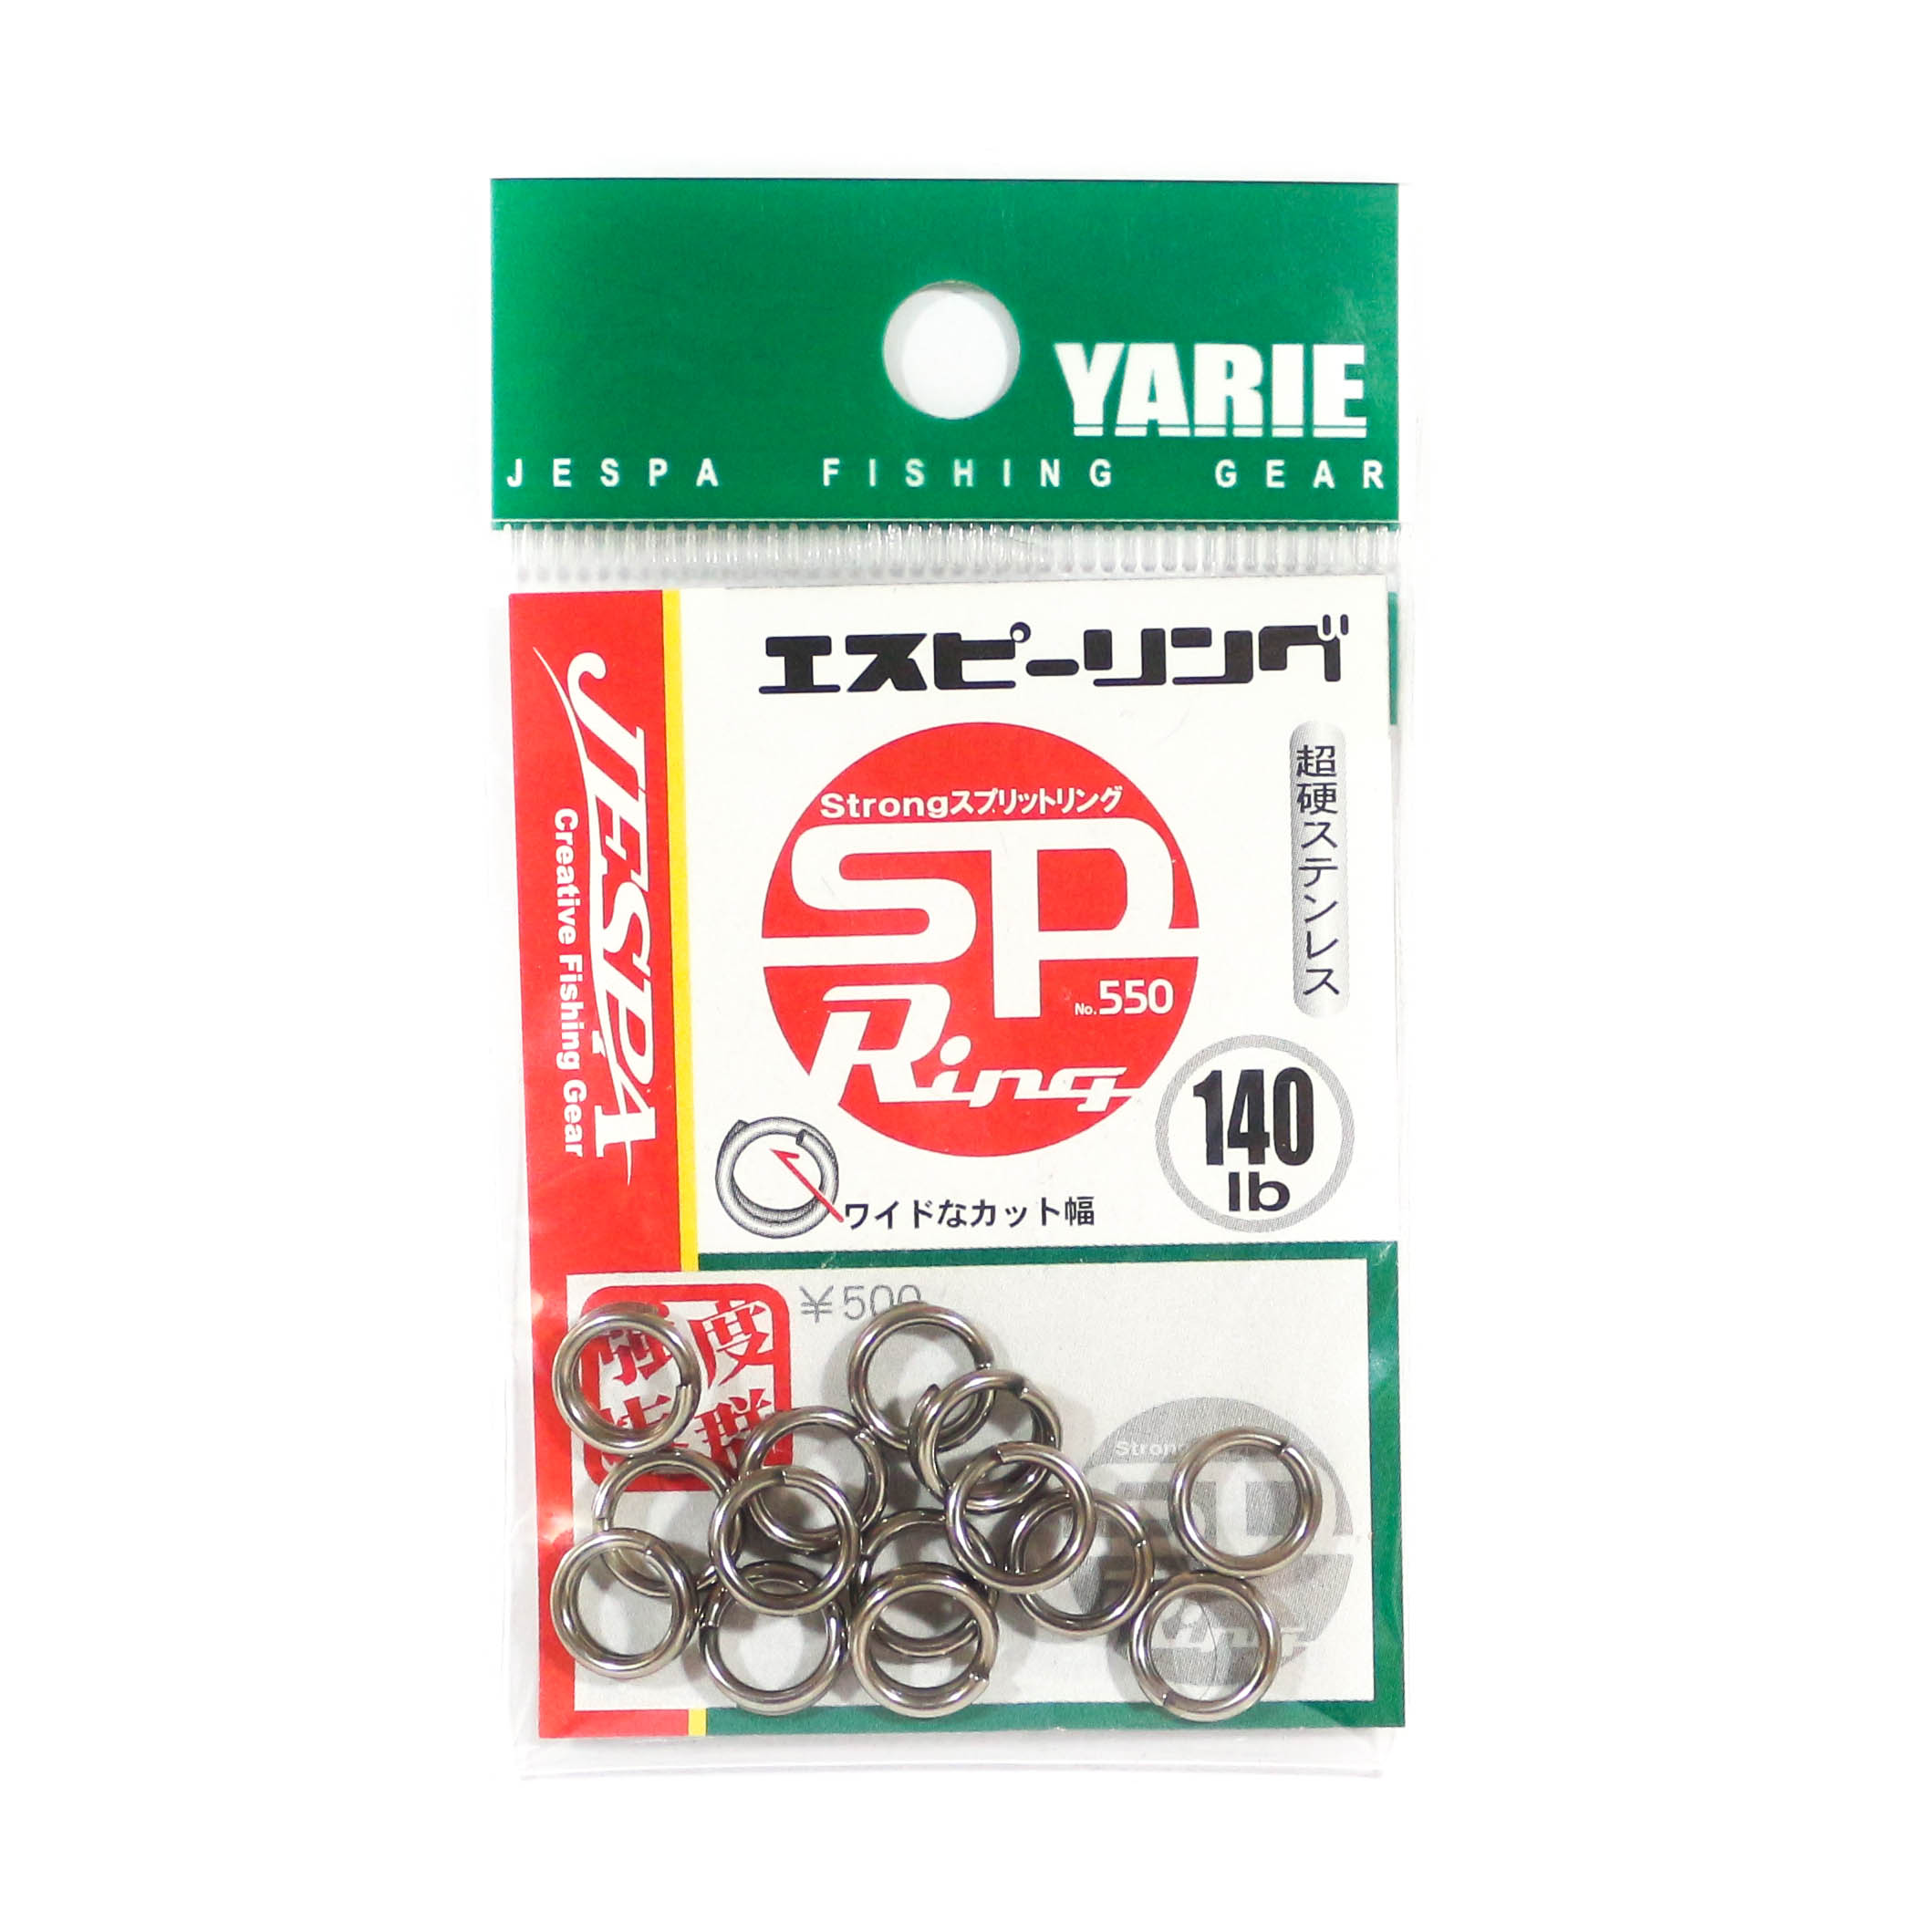 Yarie Jespa M. 550 Split Rings Heavy Duty Size 140lb (4519)